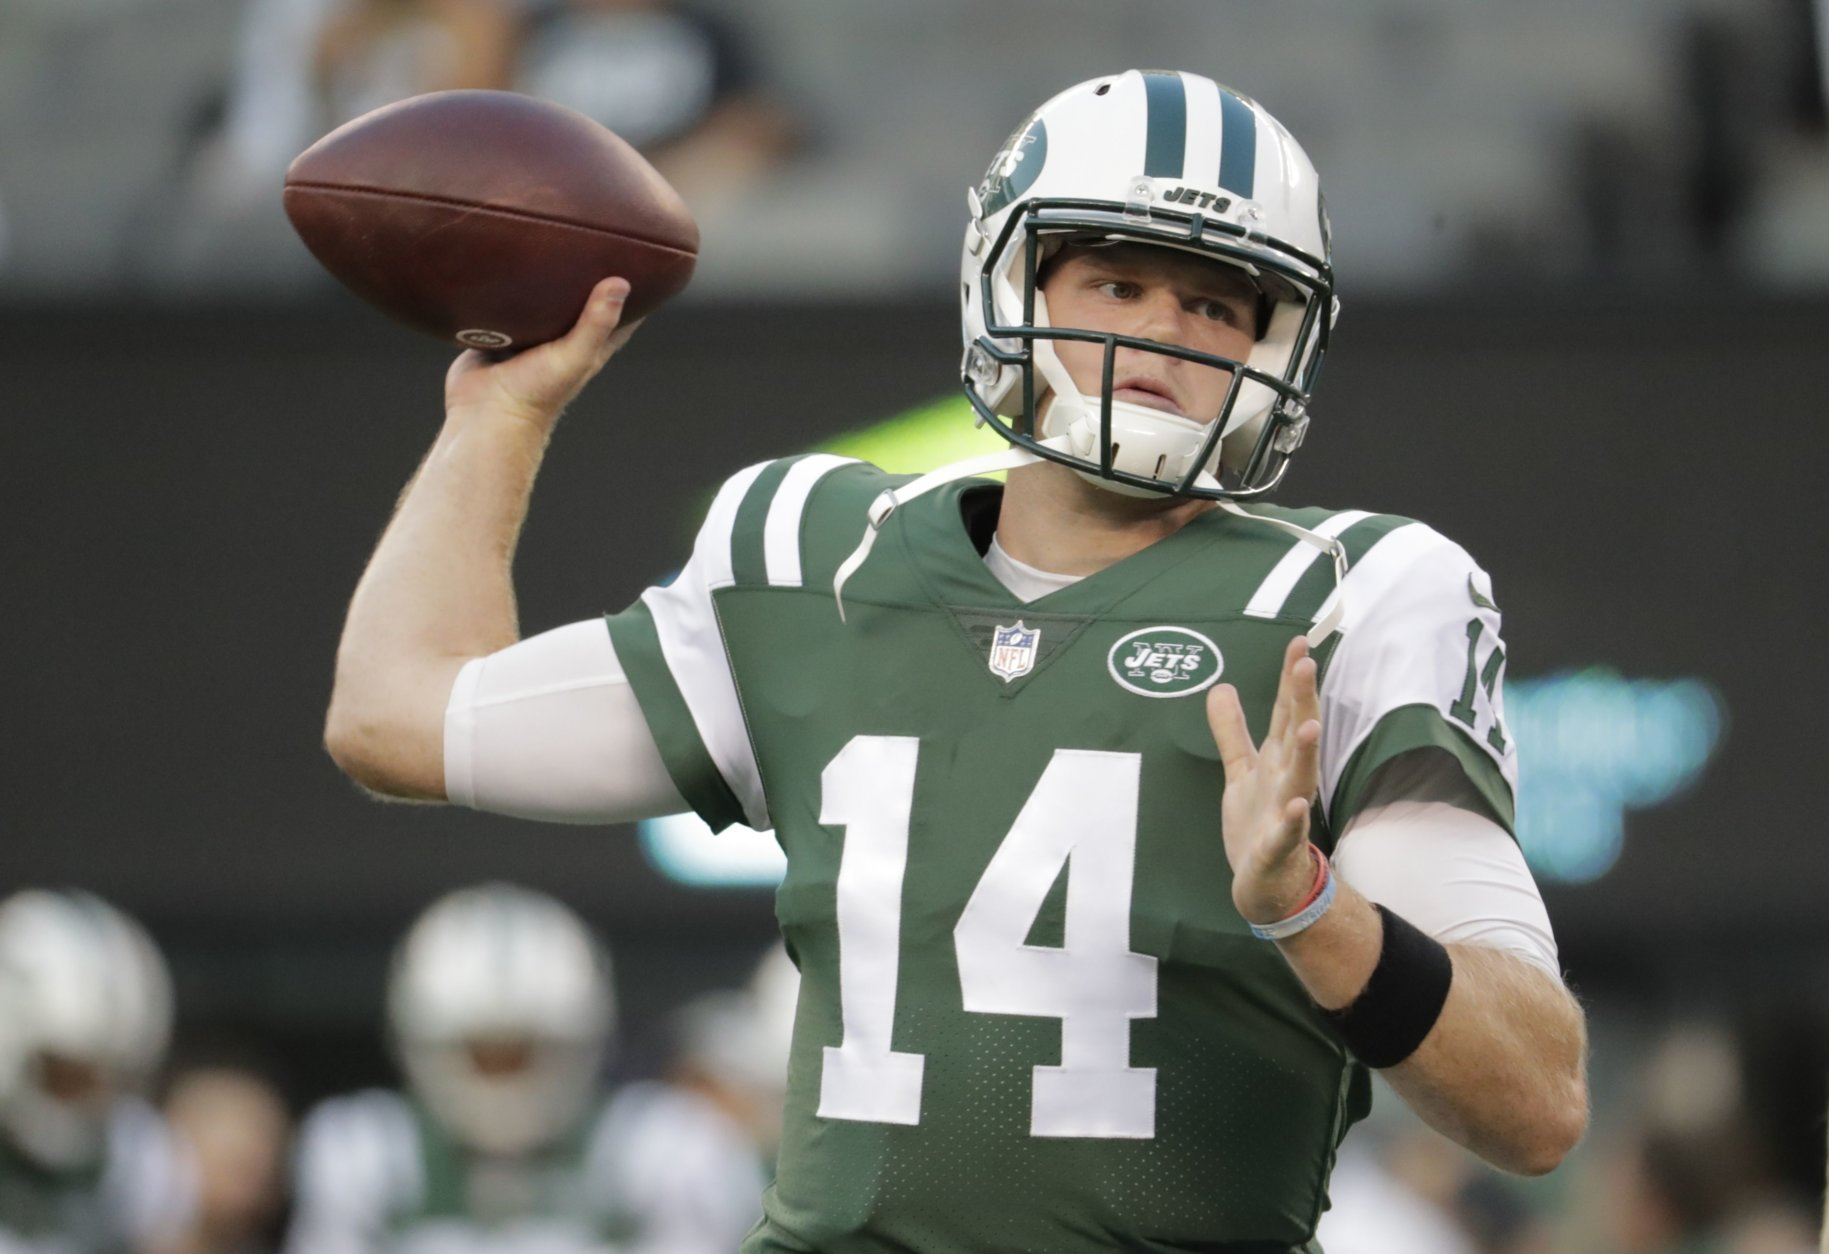 New York Jets quarterback Sam Darnold (14) warms up before an NFL football game against the New York Giants, Friday, Aug. 24, 2018, in East Rutherford, N.J. (AP Photo/Julio Cortez)